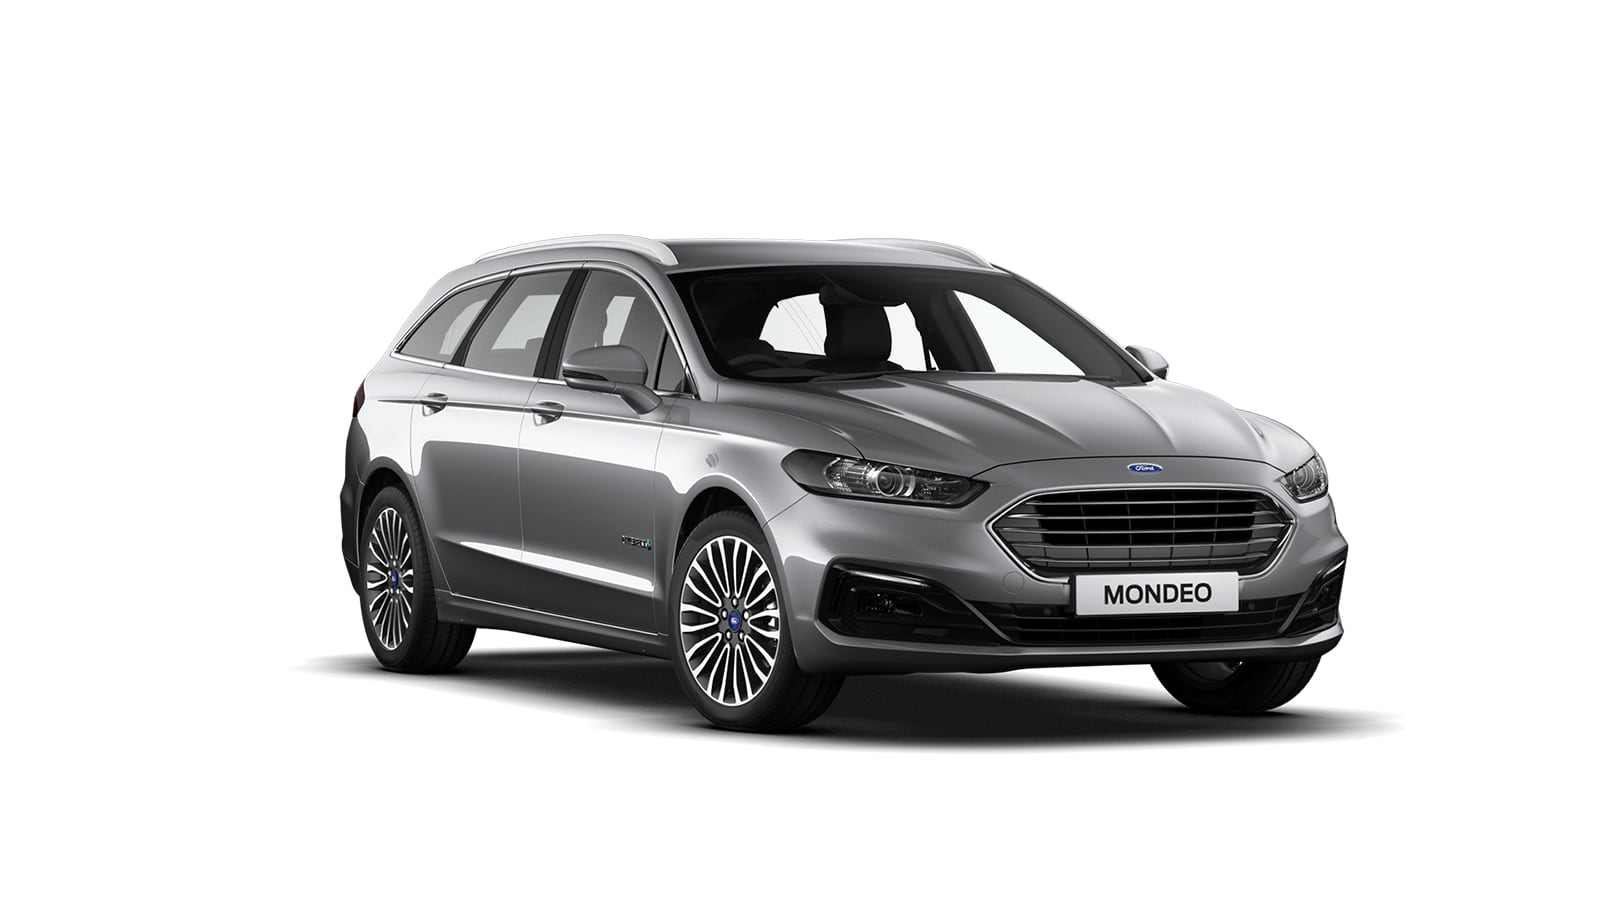 NEW MONDEO HYBRID Titanium Edition Hybrid Estate in Moondust Silver